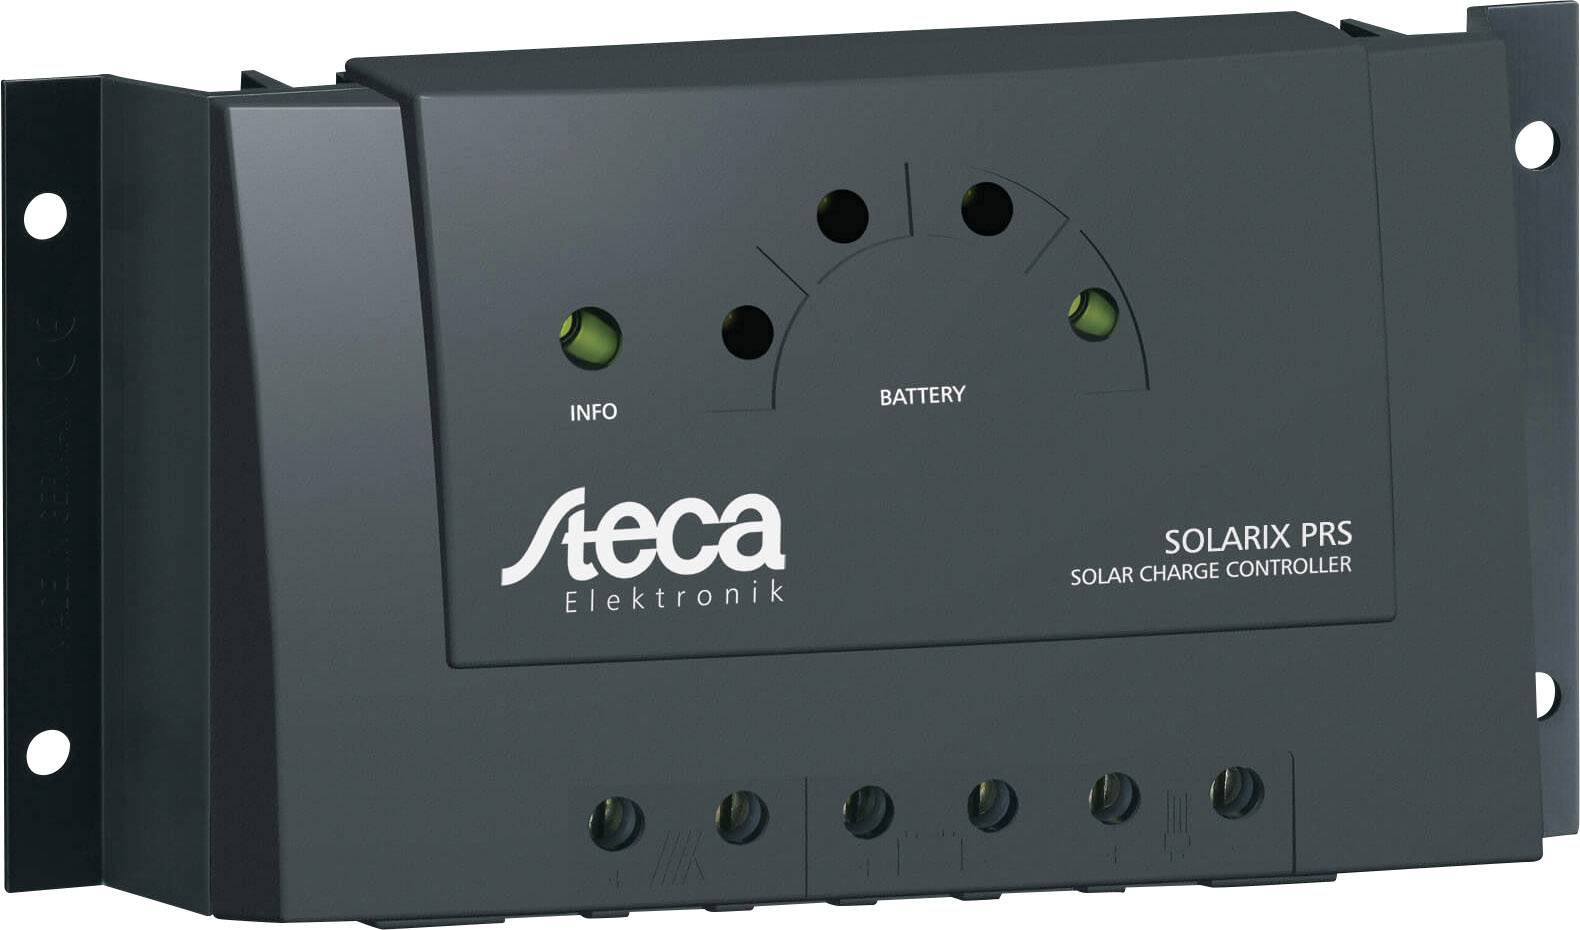 Solarix Prs 1515 Wiring Diagram Detailed Diagrams Steca Charge Controller Serial 12 V 24 15 A From Schematic